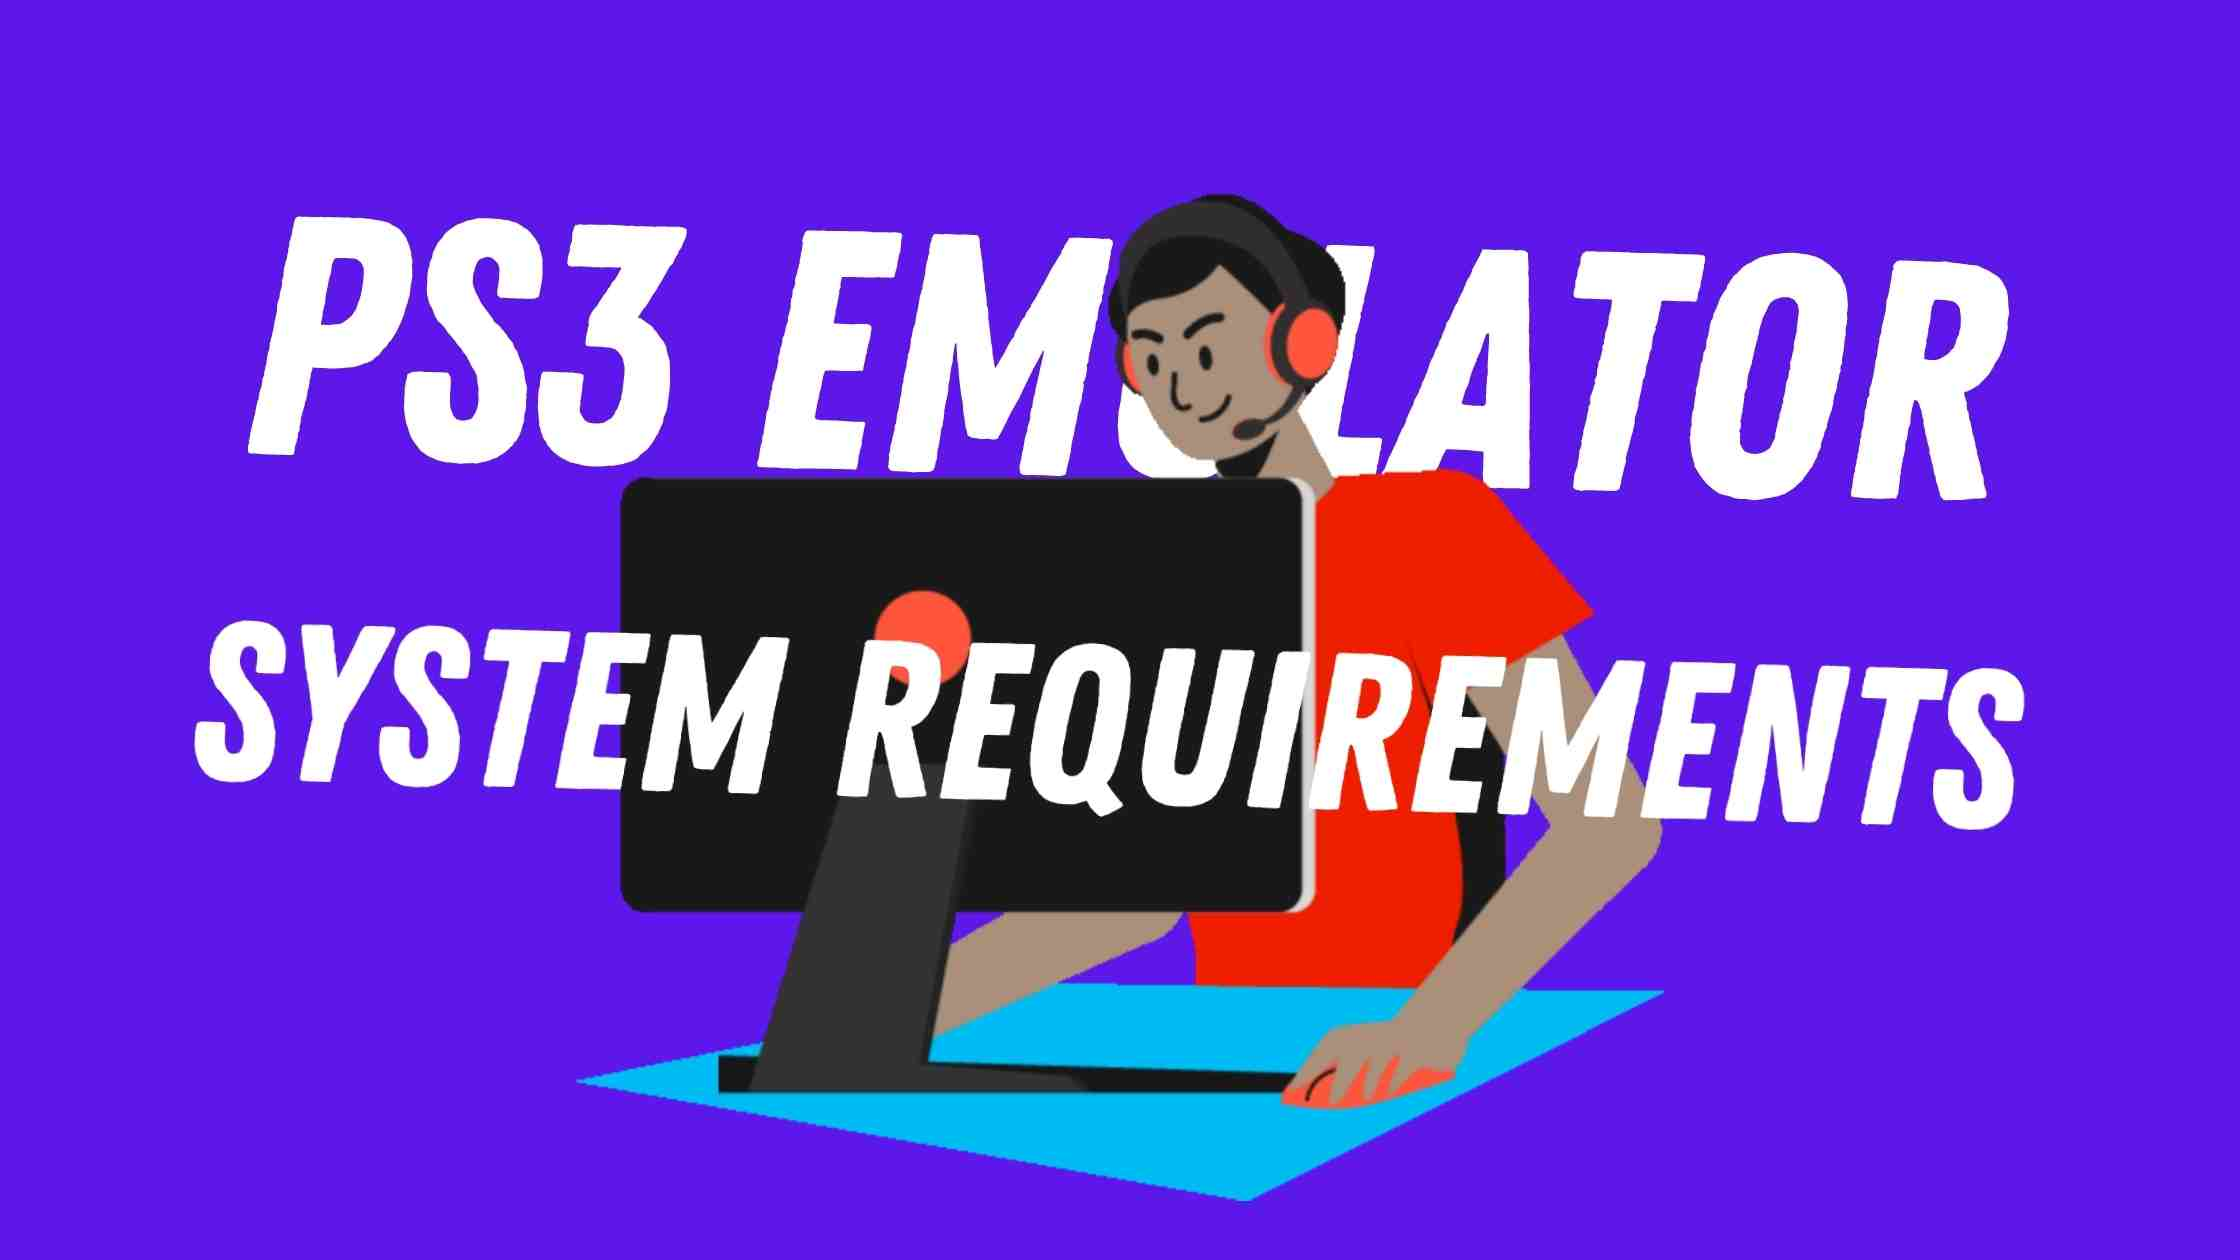 PS3 emulator System Requirements